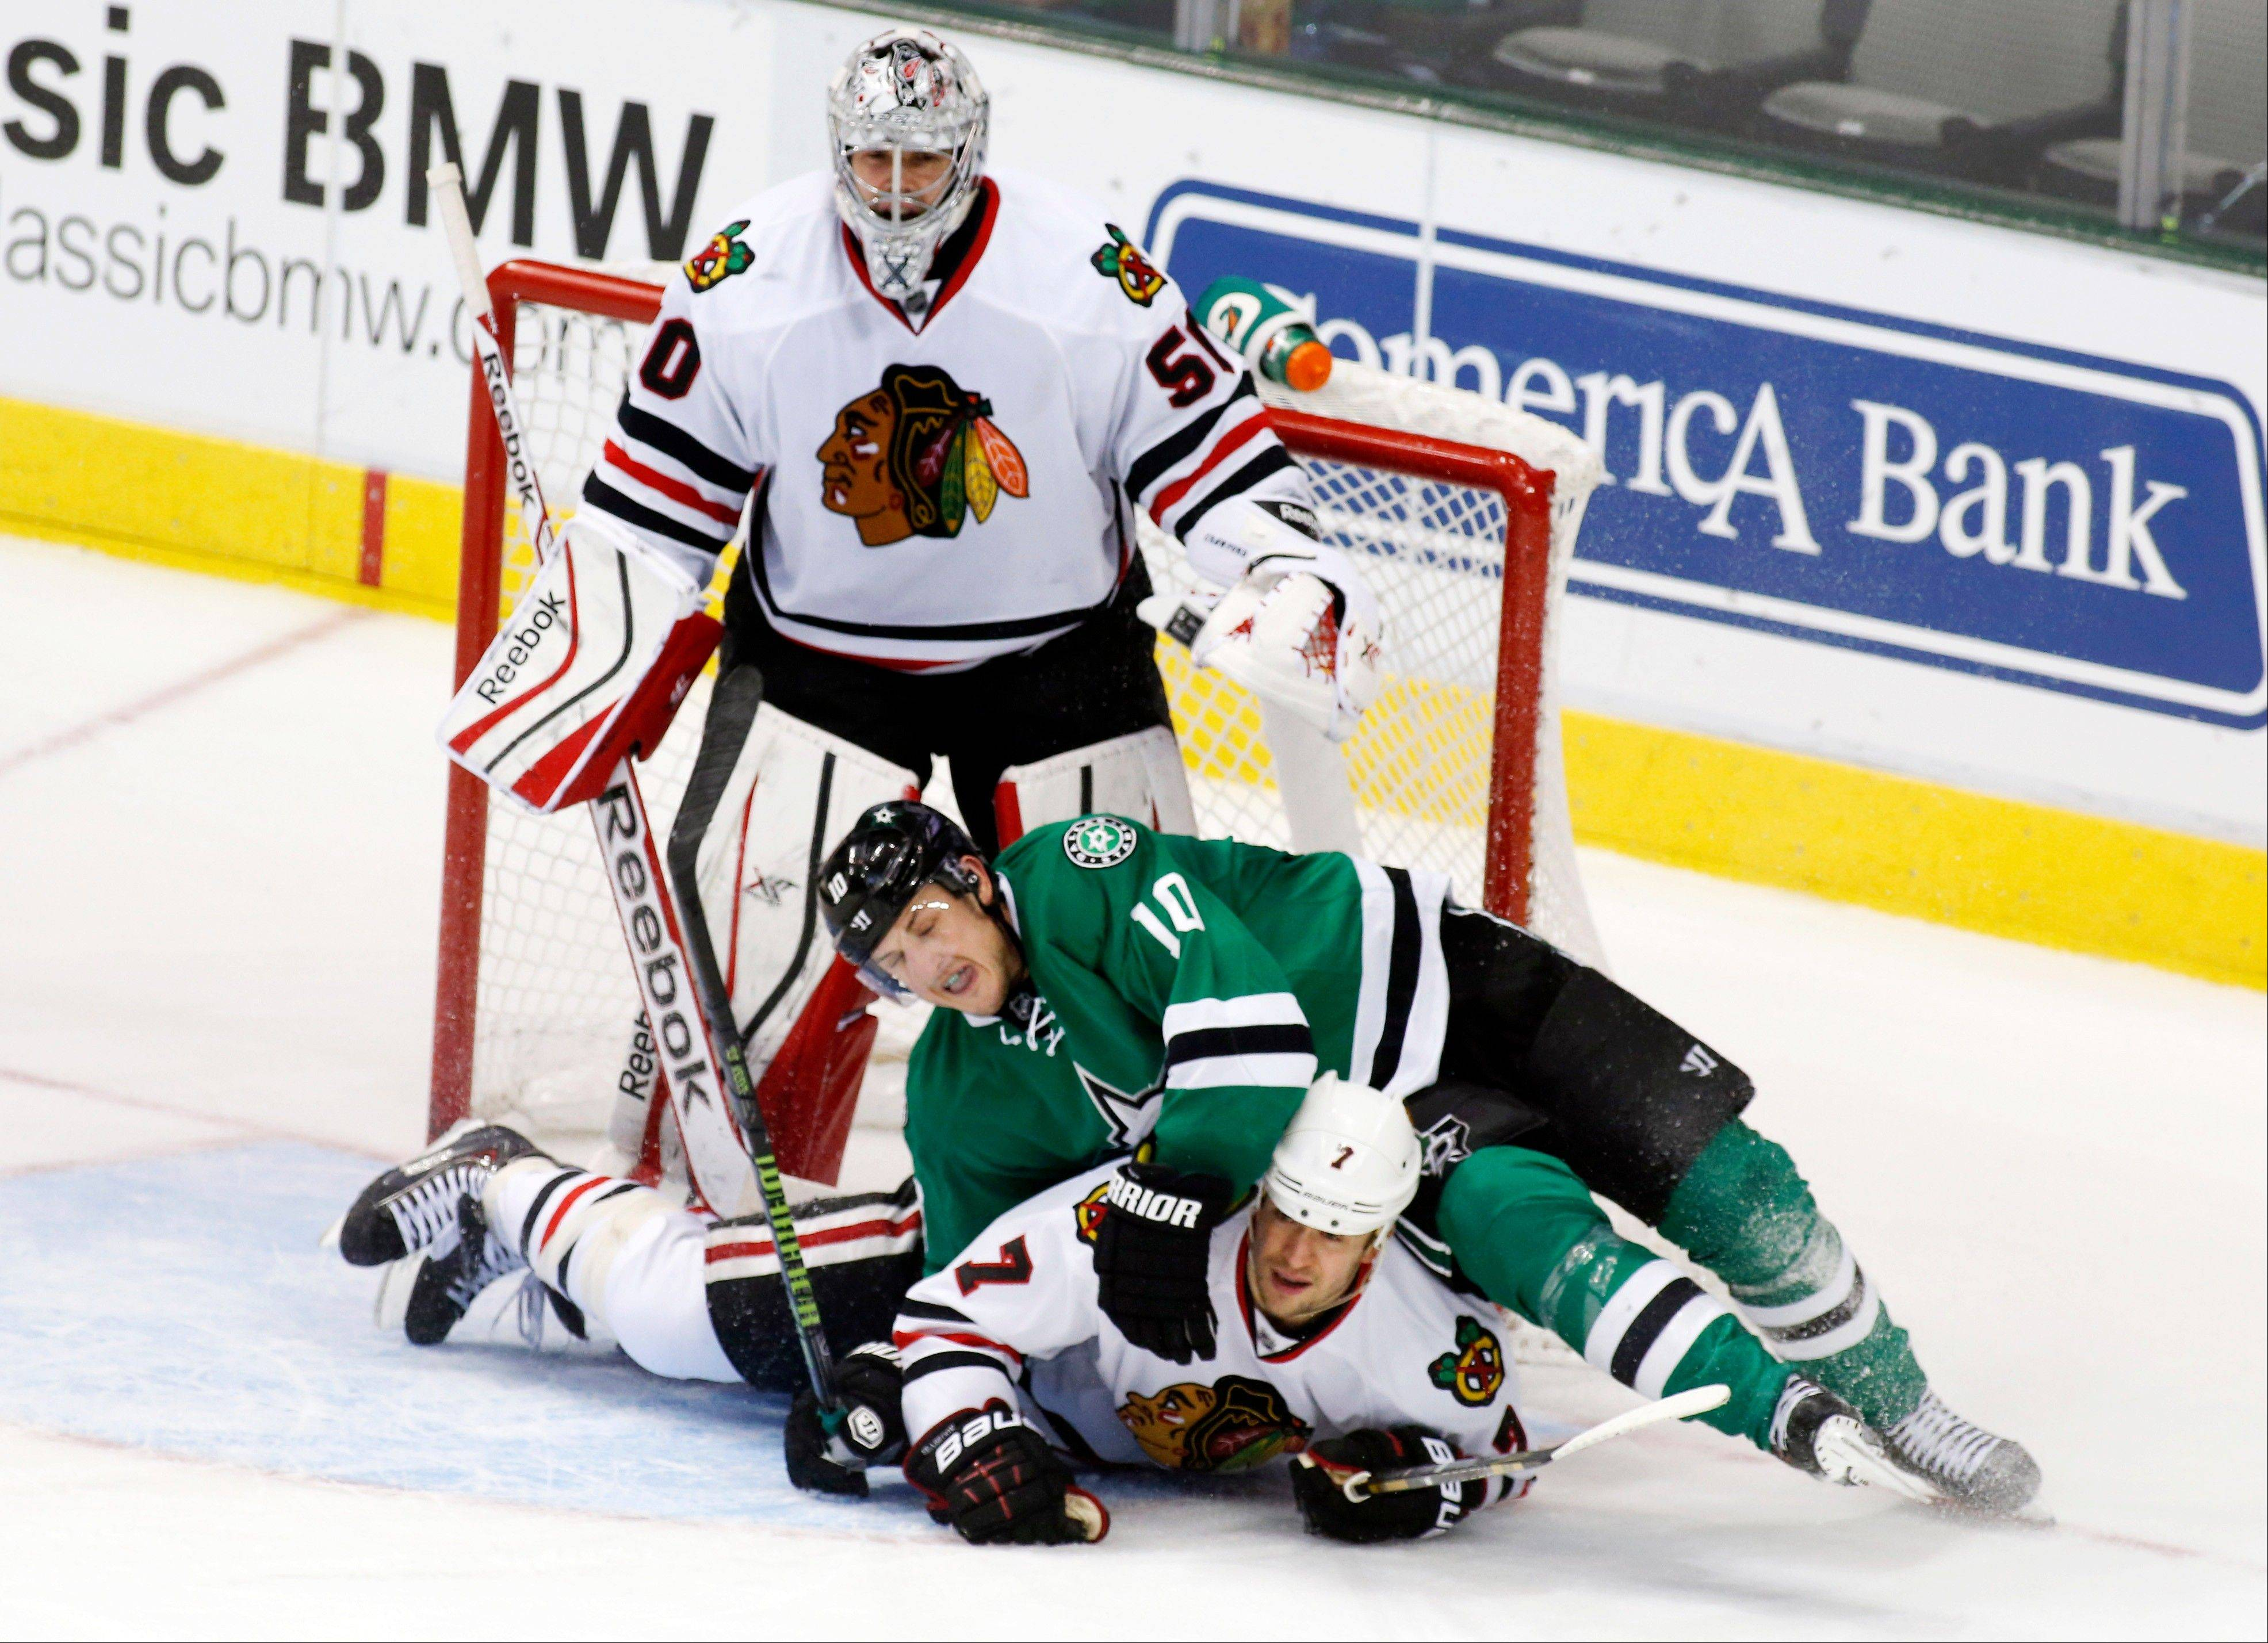 Blackhawks goalie Corey Crawford watches as defenseman Brent Seabrook gets tangled up with Shawn Horcoff of the Stars during the second period Saturday in Dallas, Texas.